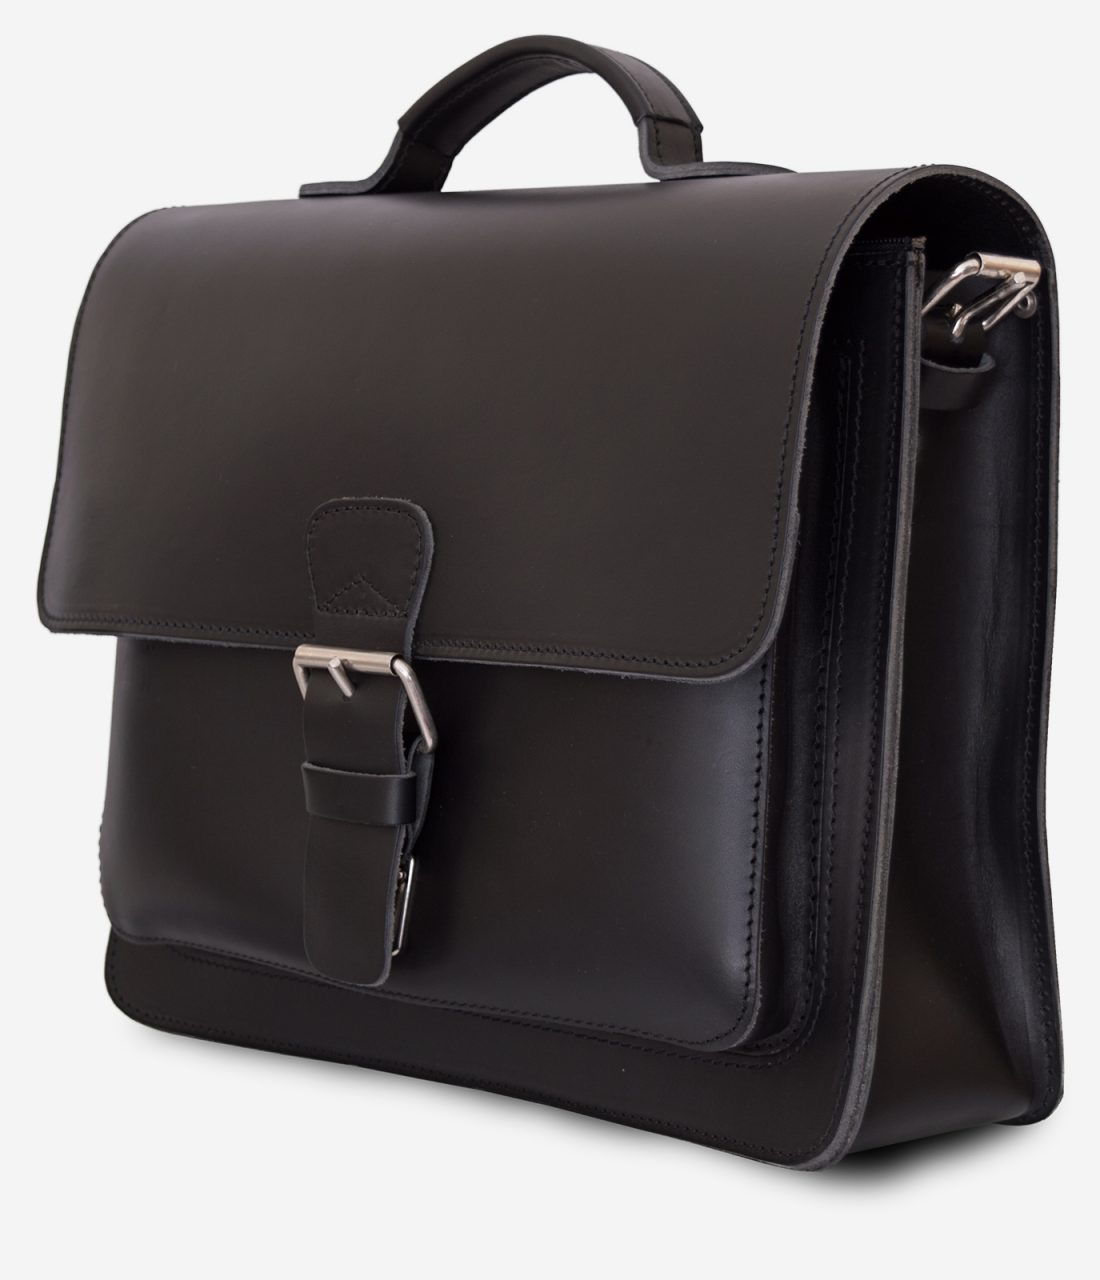 Side view of black leather briefcase with 1 compartment and large front pocket 112141.